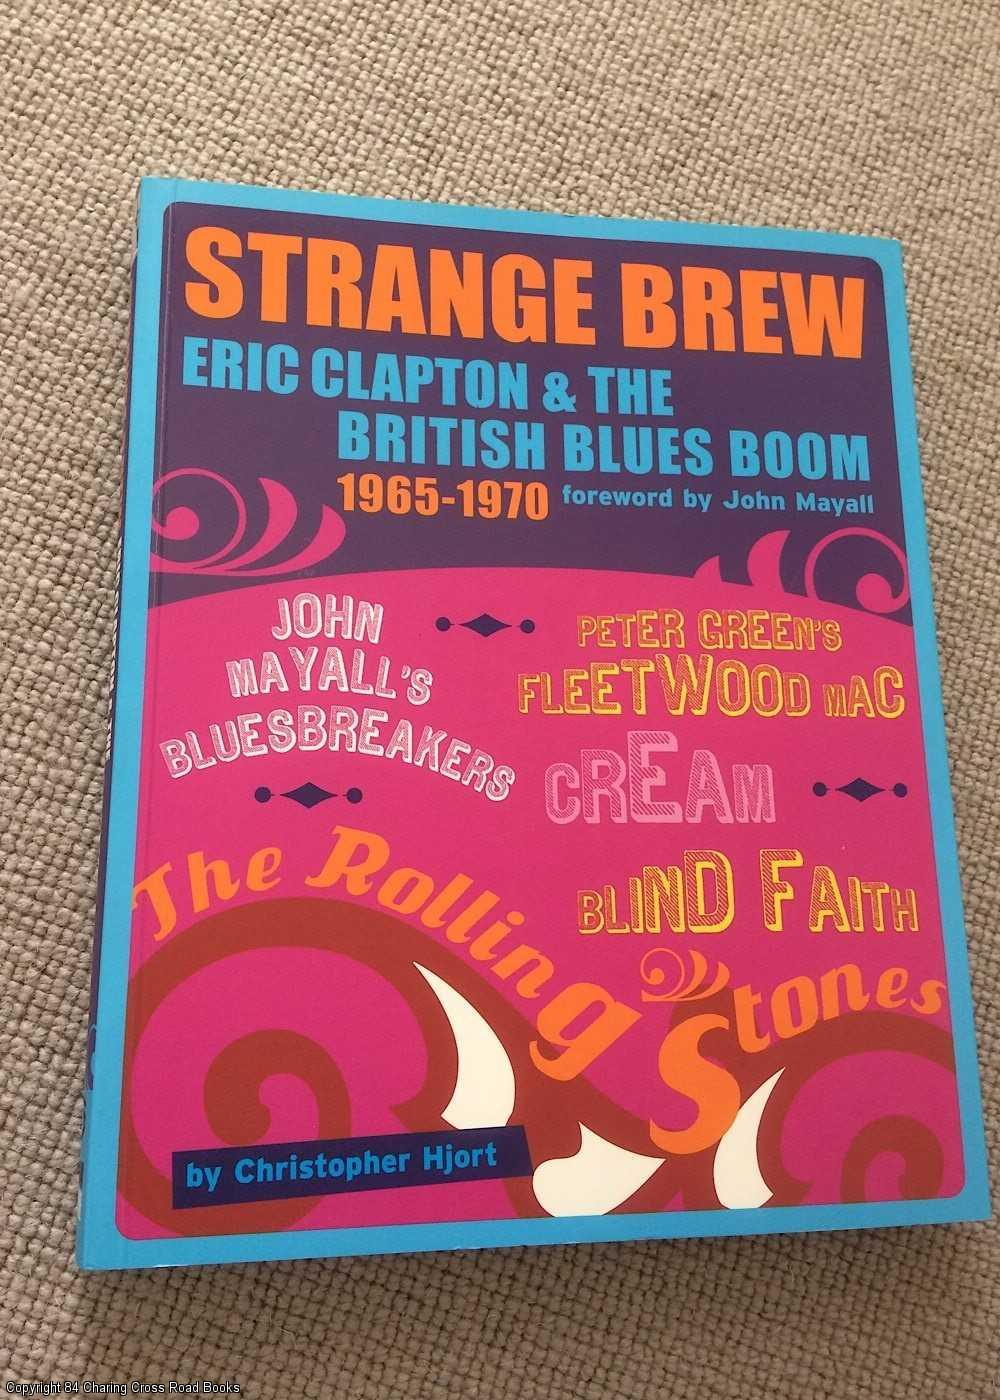 CHARLES HORTON, CHRISTOPHER HJORT; JOHN MAYALL - Strange Brew: Eric Clapton and the British Blues Boom 1965 - 1970